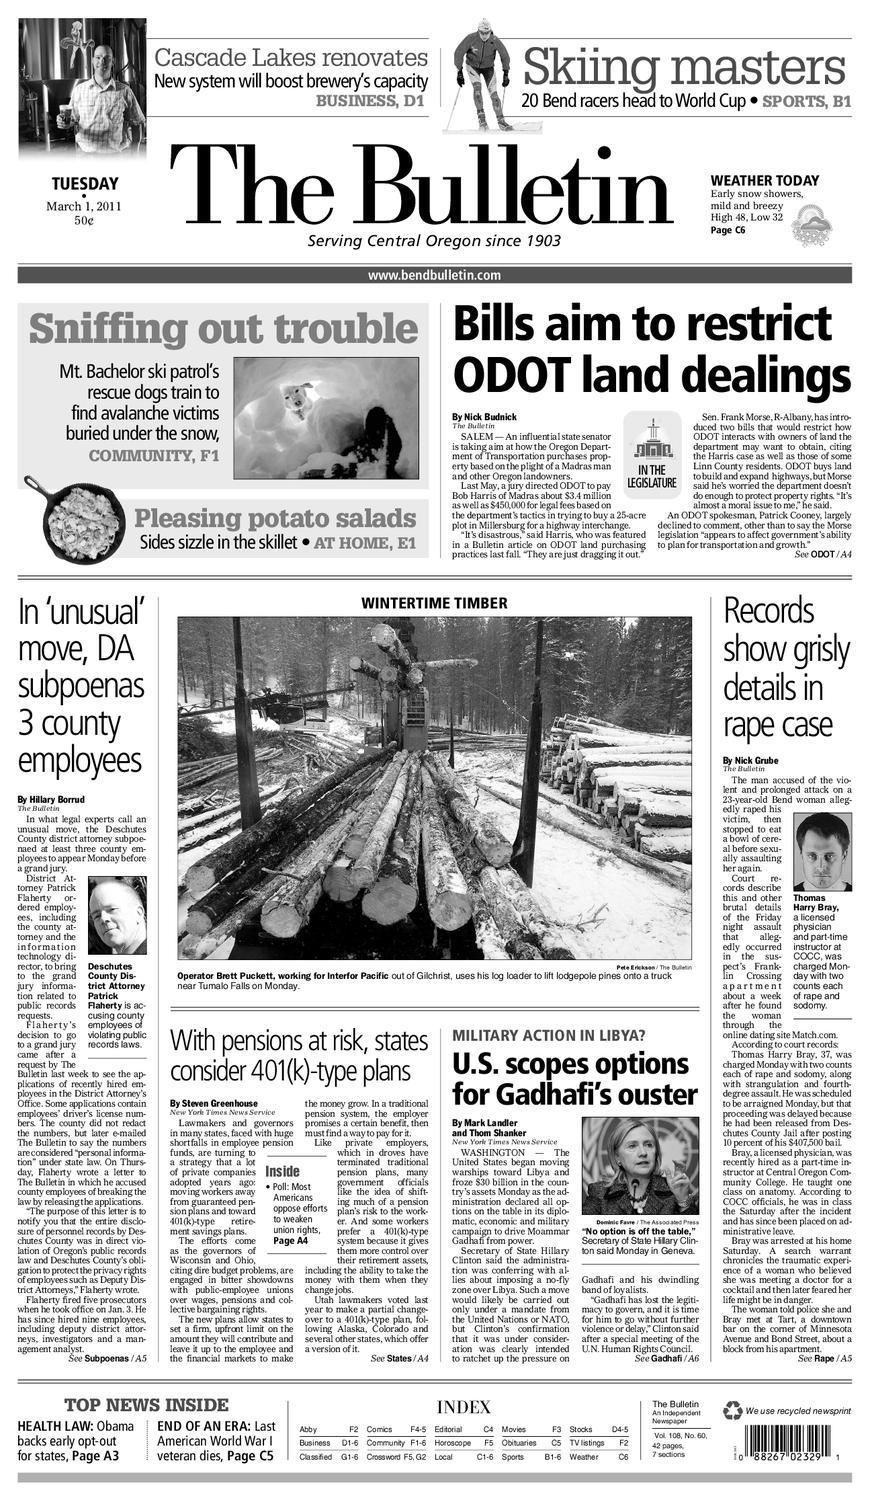 buy online 10249 fd0e3 Bulletin Daily Paper 03 01 11 by Western Communications, Inc. - issuu